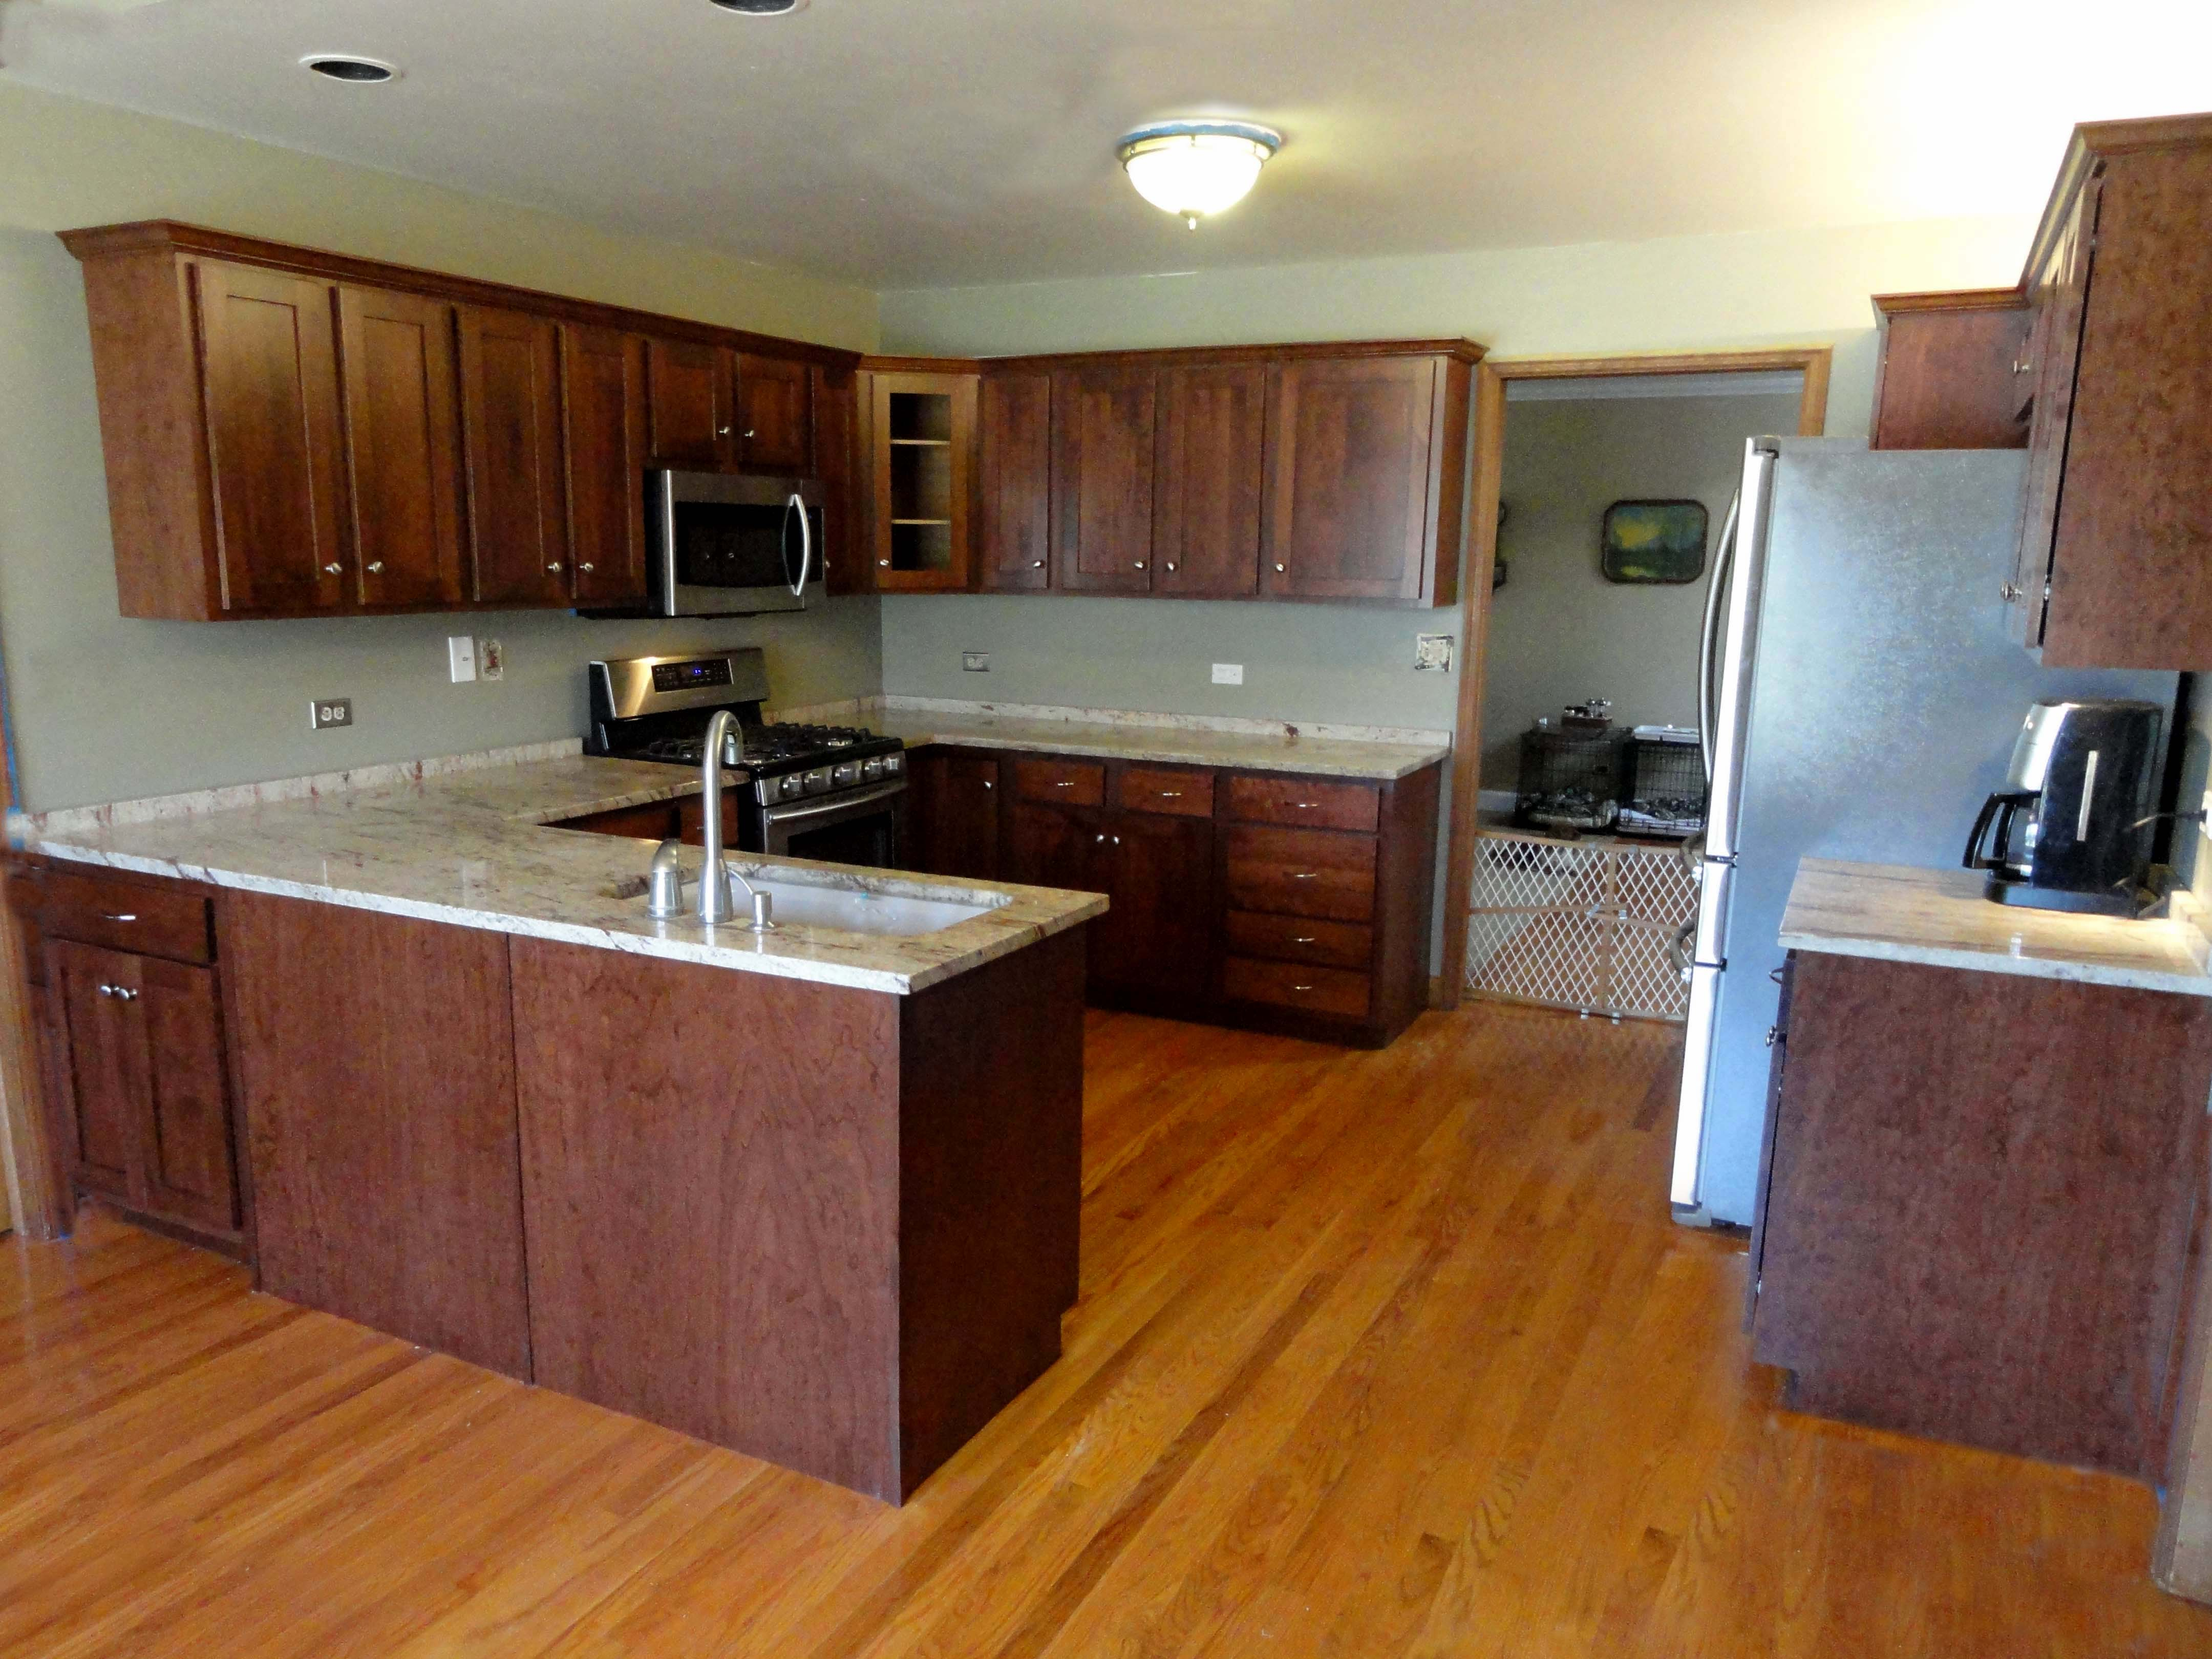 Kitchen cabinet refacing libertyville il for Looking for kitchen